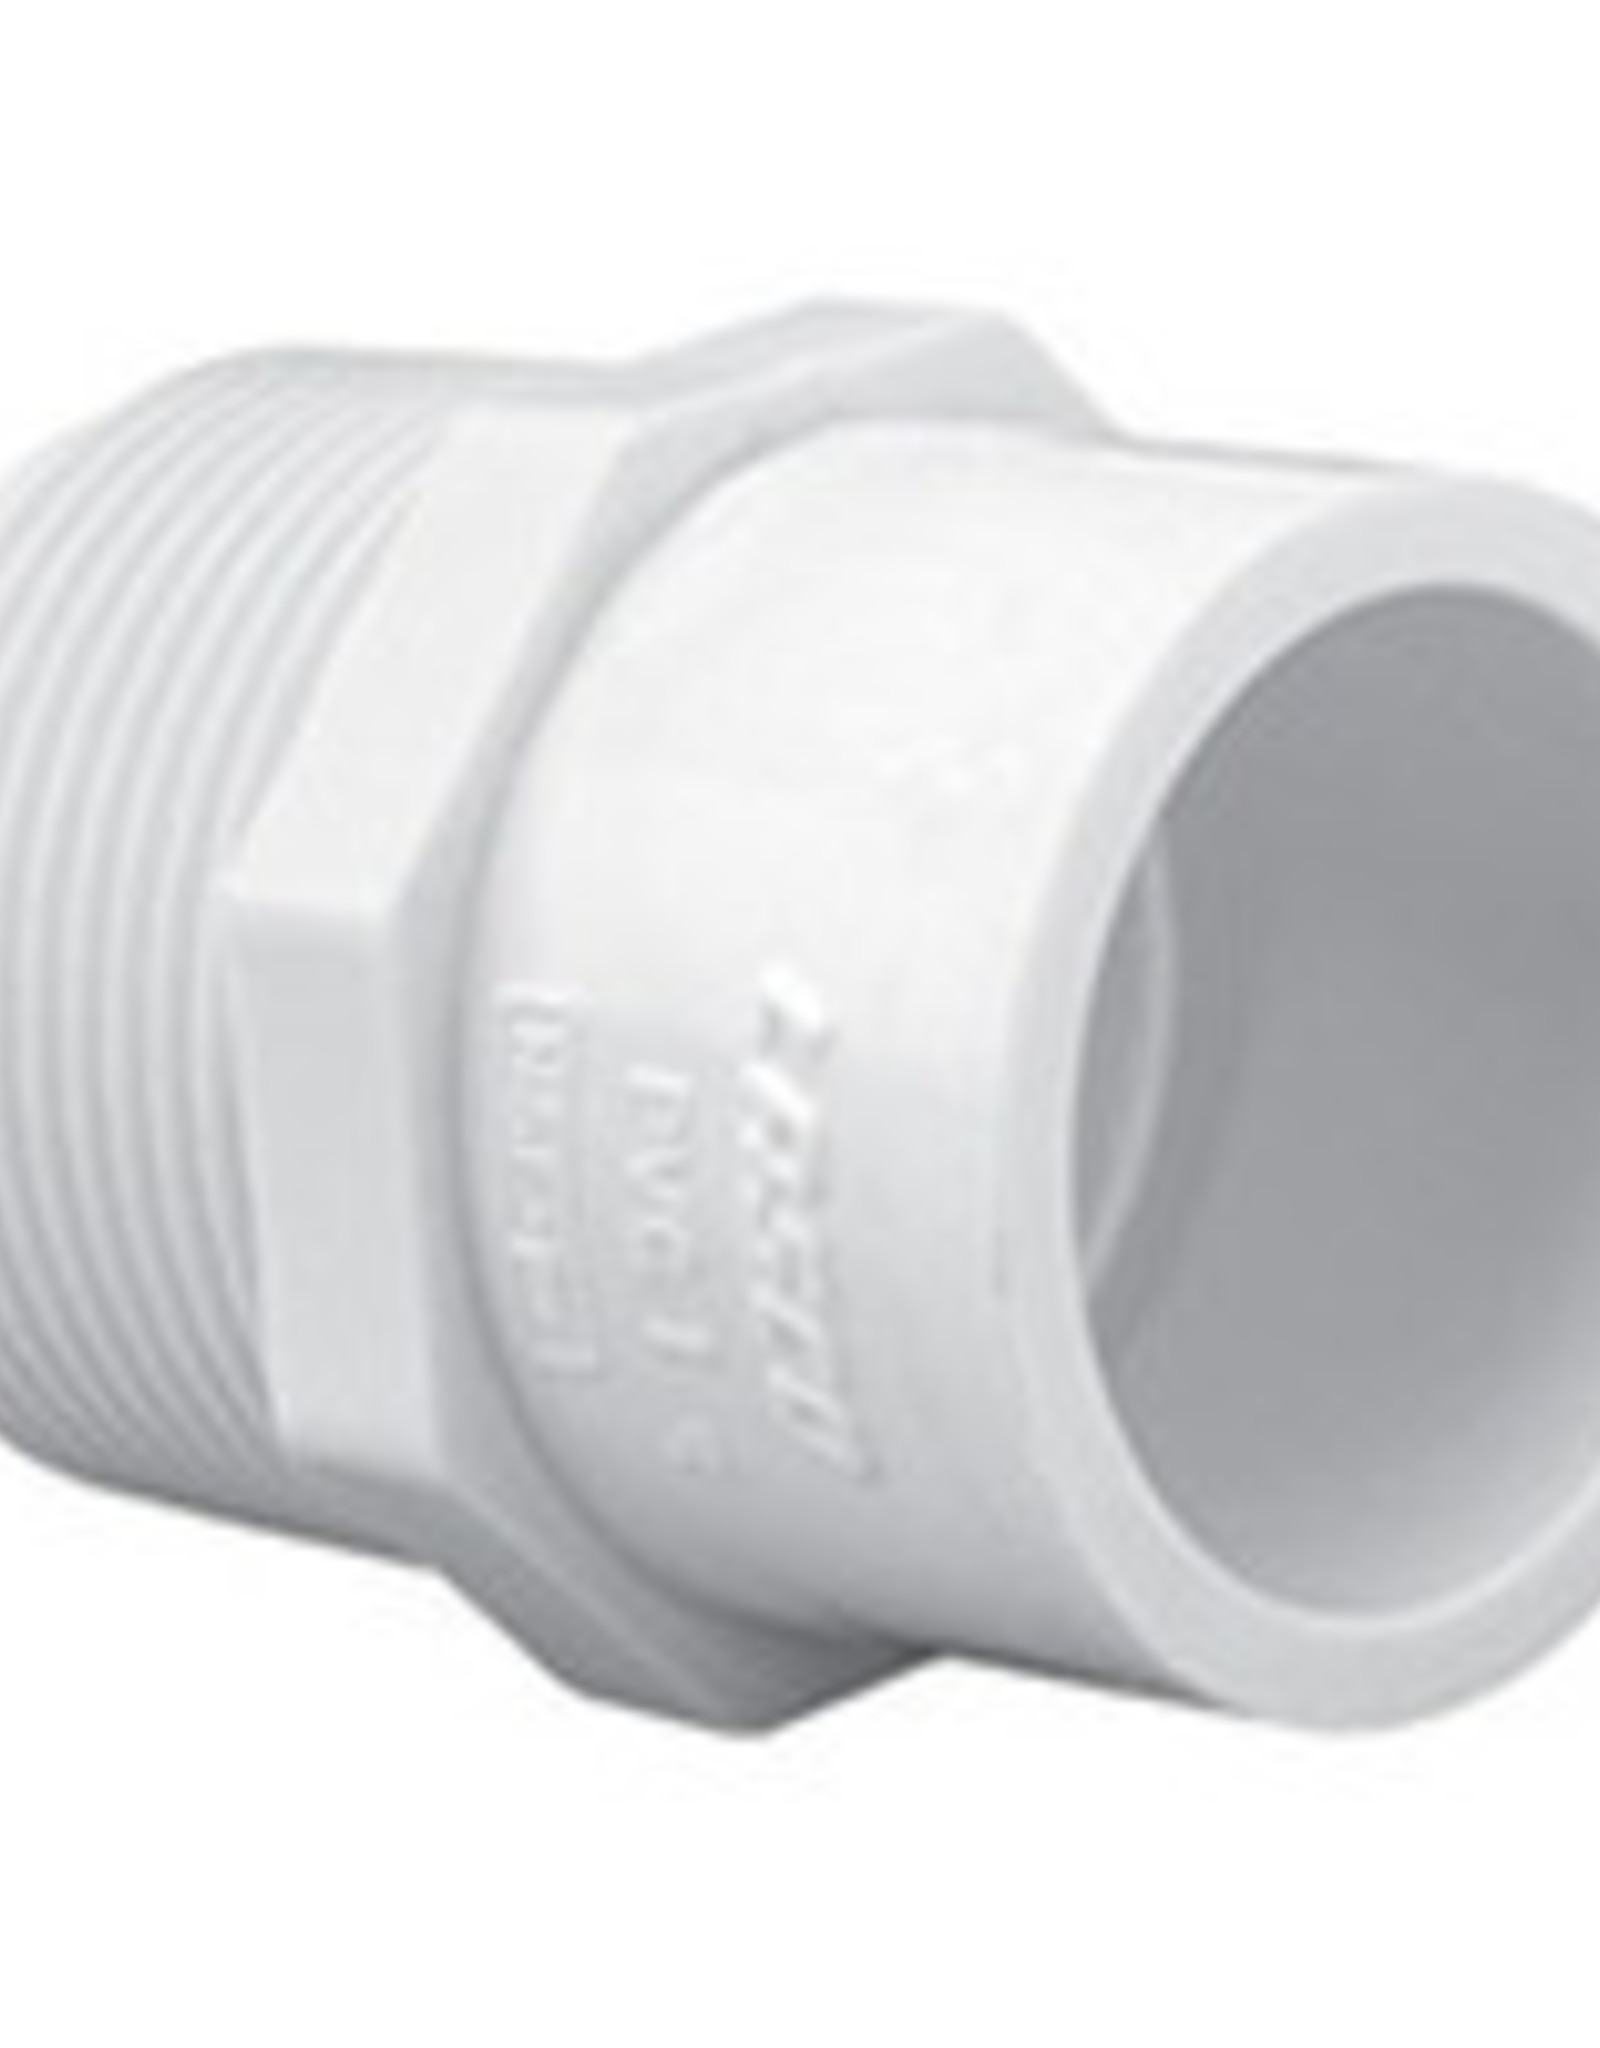 "LASCO PVC 2"" Male Adapter Slip X MPT SCH 40"